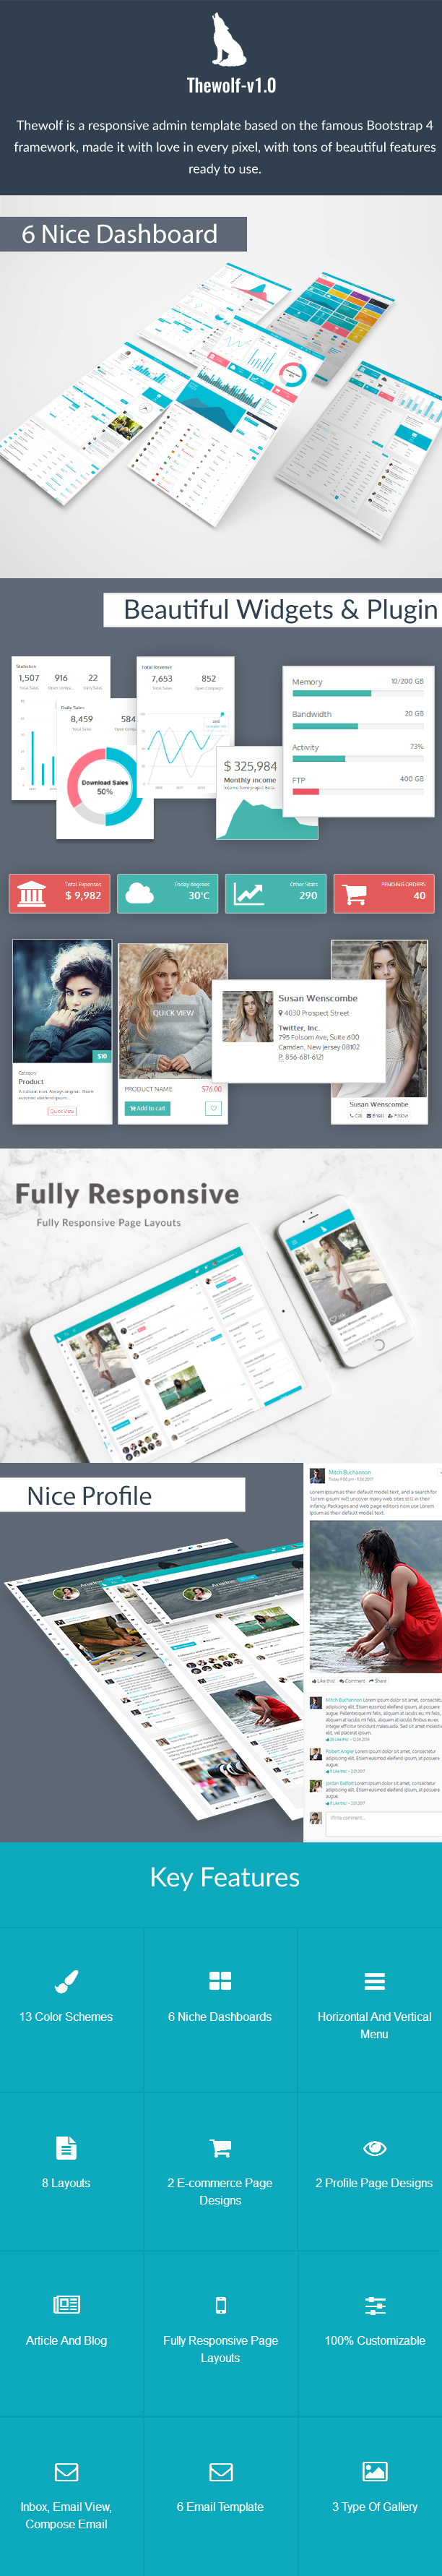 Thewolf - Responsive Bootstrap 4 Admin Template - 1